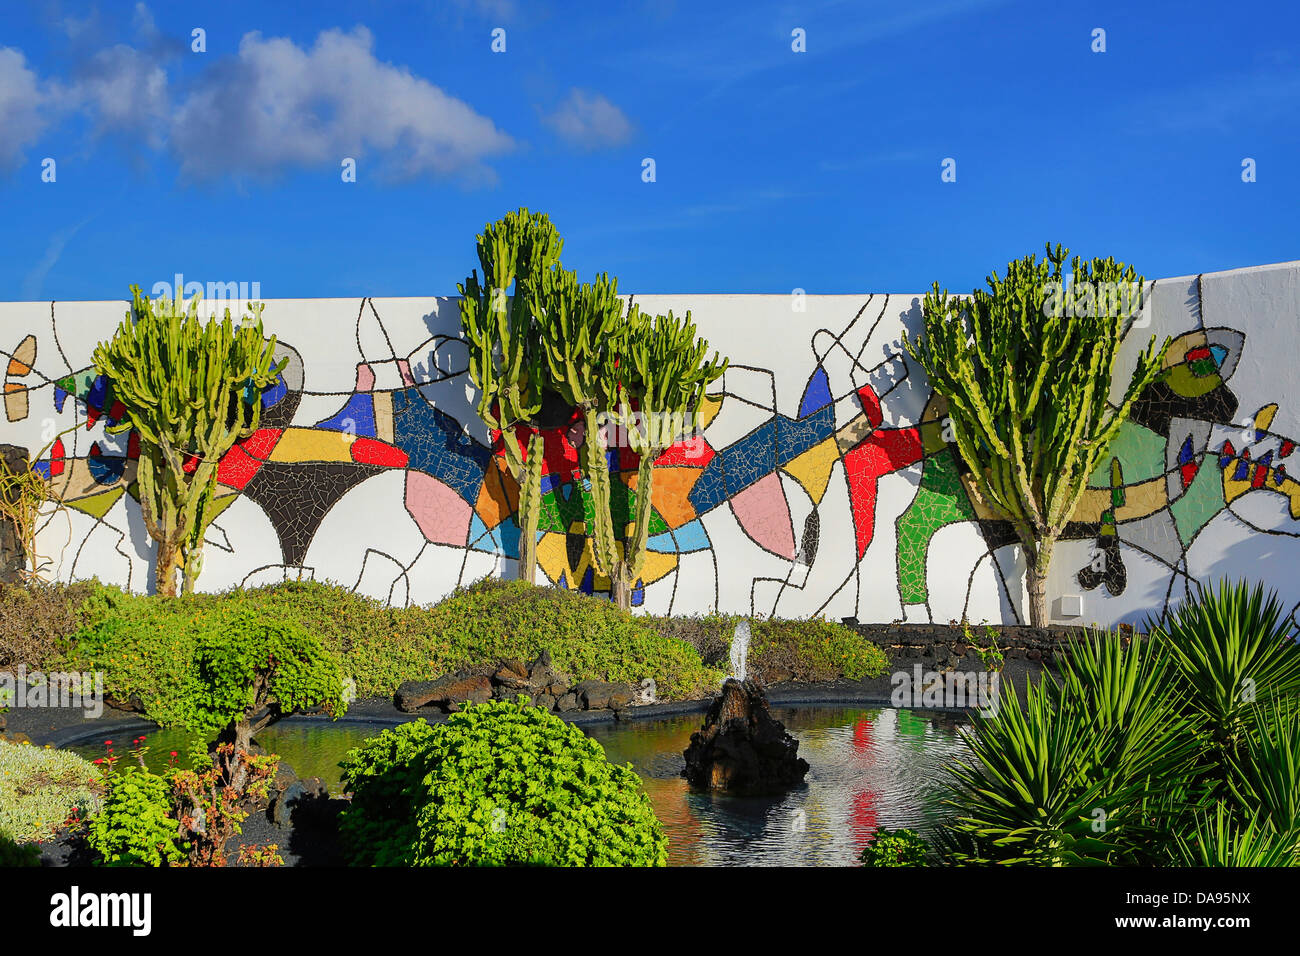 Spain, Europe, Canary Islands, Foundation, Lanzarote, architecture, art, artist, Cesar manrique, colourful, exotic, - Stock Image